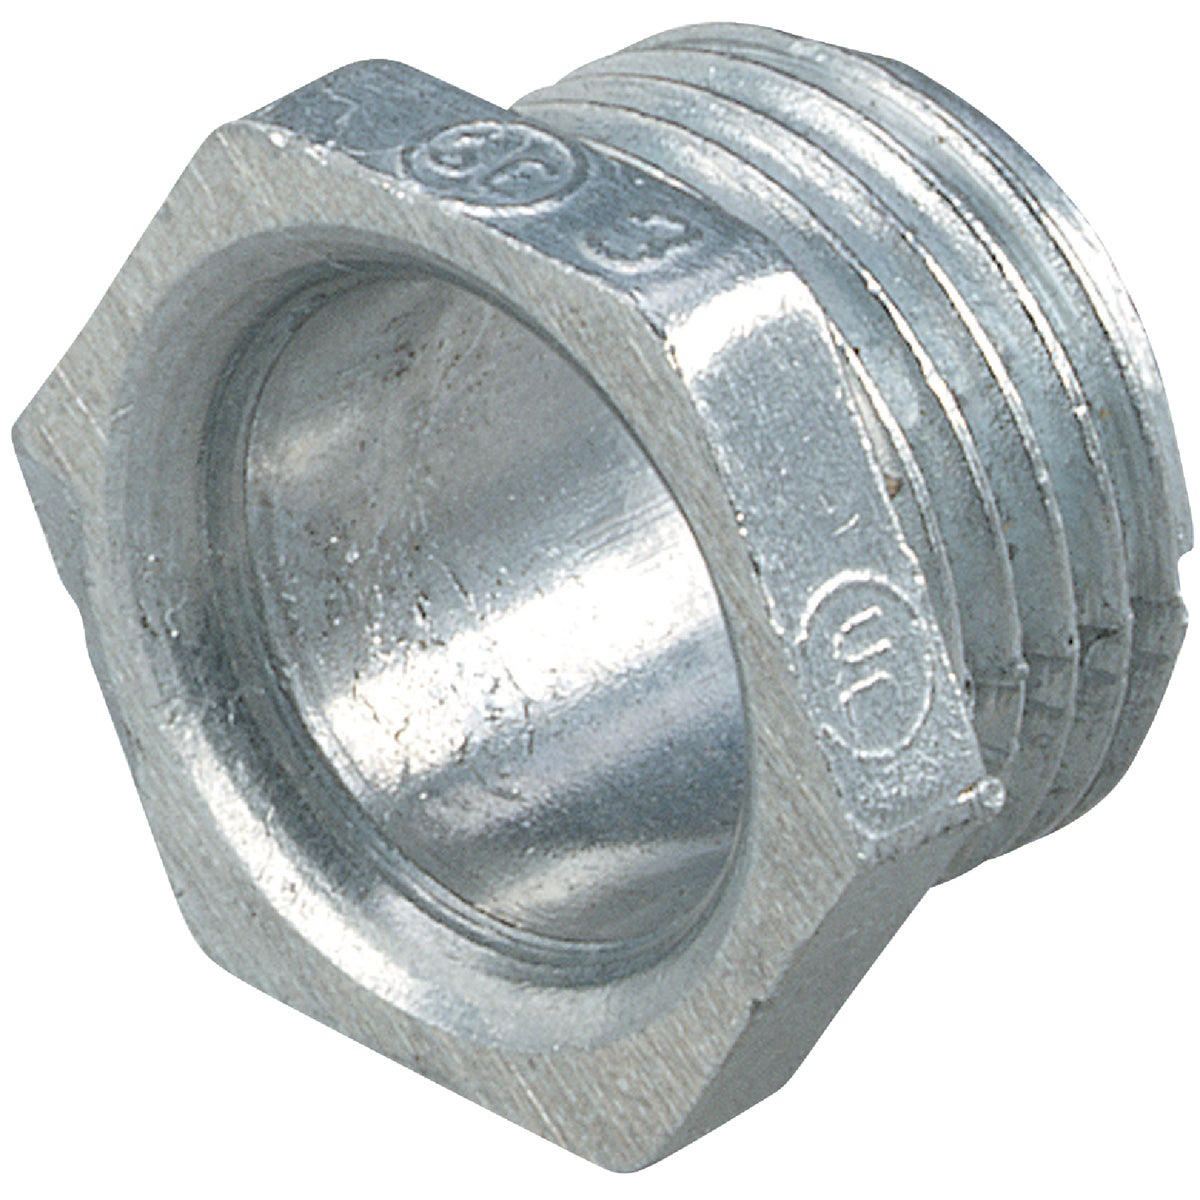 "2"" CONDUIT NIPPLE - HA2061 by Thomas & Betts"